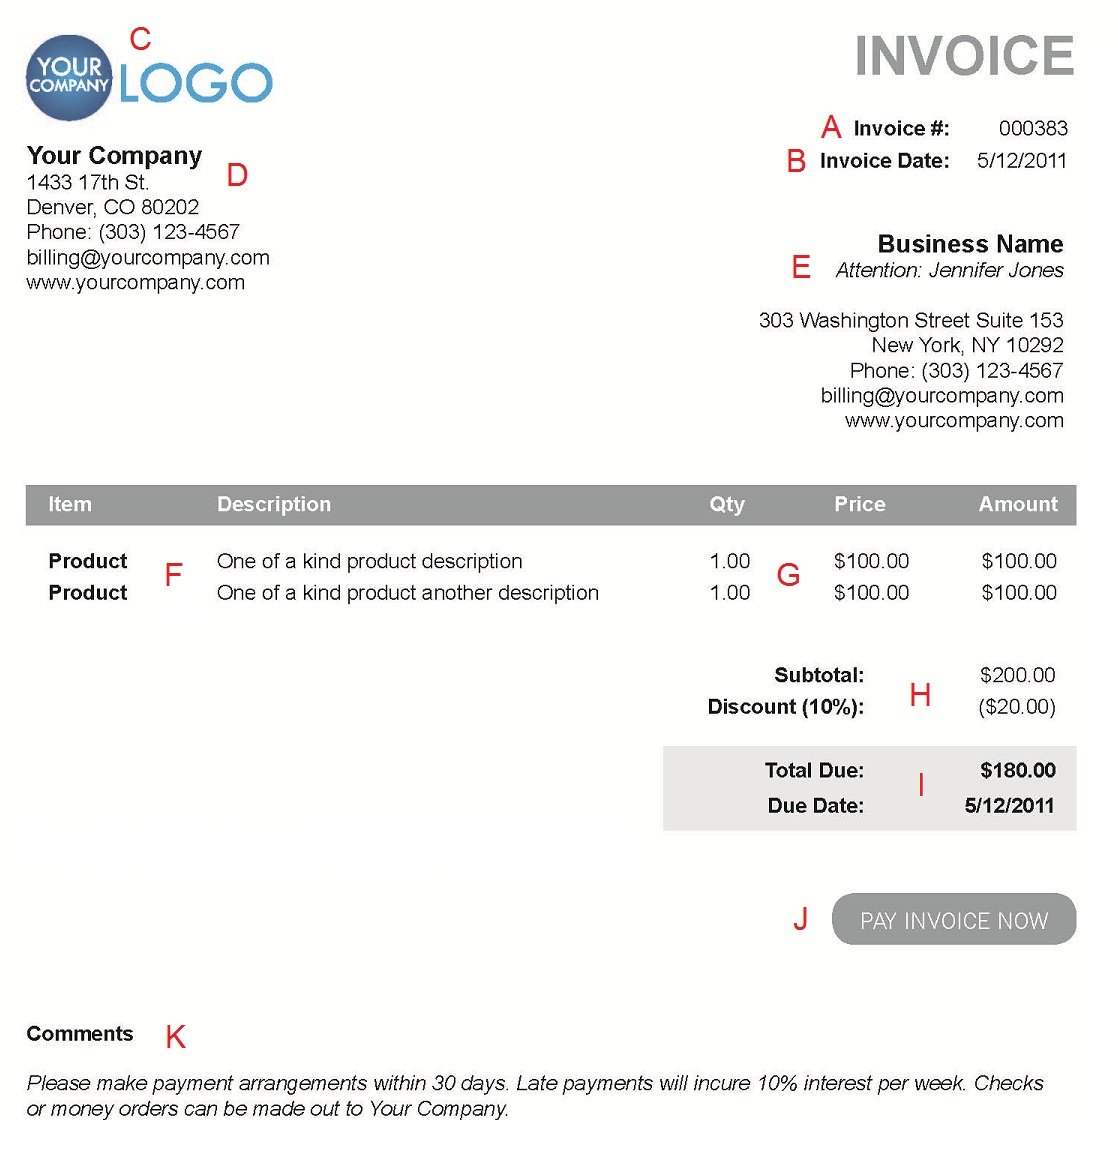 Soulfulpowerus  Wonderful The  Different Sections Of An Electronic Payment Invoice With Magnificent A  With Divine How To Make A Proper Invoice Also Free Invoice And Receipt Software In Addition Requesting Payment For Overdue Invoice And Contractor Invoice Format As Well As Mazda Invoice Price Additionally Msrp Invoice Price Difference From Paysimplecom With Soulfulpowerus  Magnificent The  Different Sections Of An Electronic Payment Invoice With Divine A  And Wonderful How To Make A Proper Invoice Also Free Invoice And Receipt Software In Addition Requesting Payment For Overdue Invoice From Paysimplecom